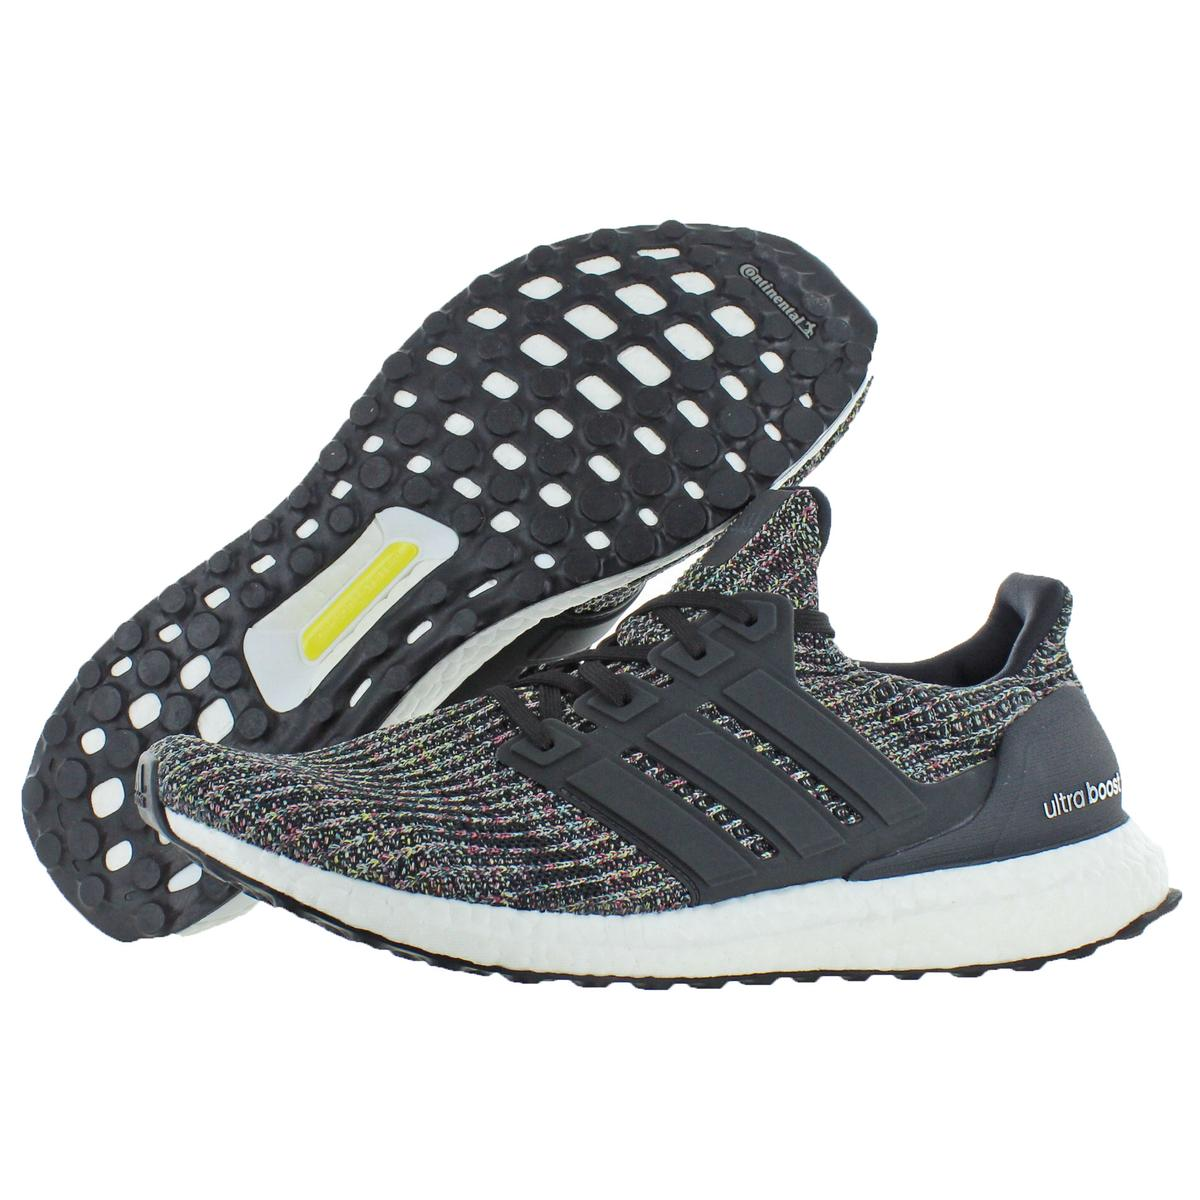 d27ddba02 Adidas Men s UltraBoost Primeknit Running Shoes Sneakers